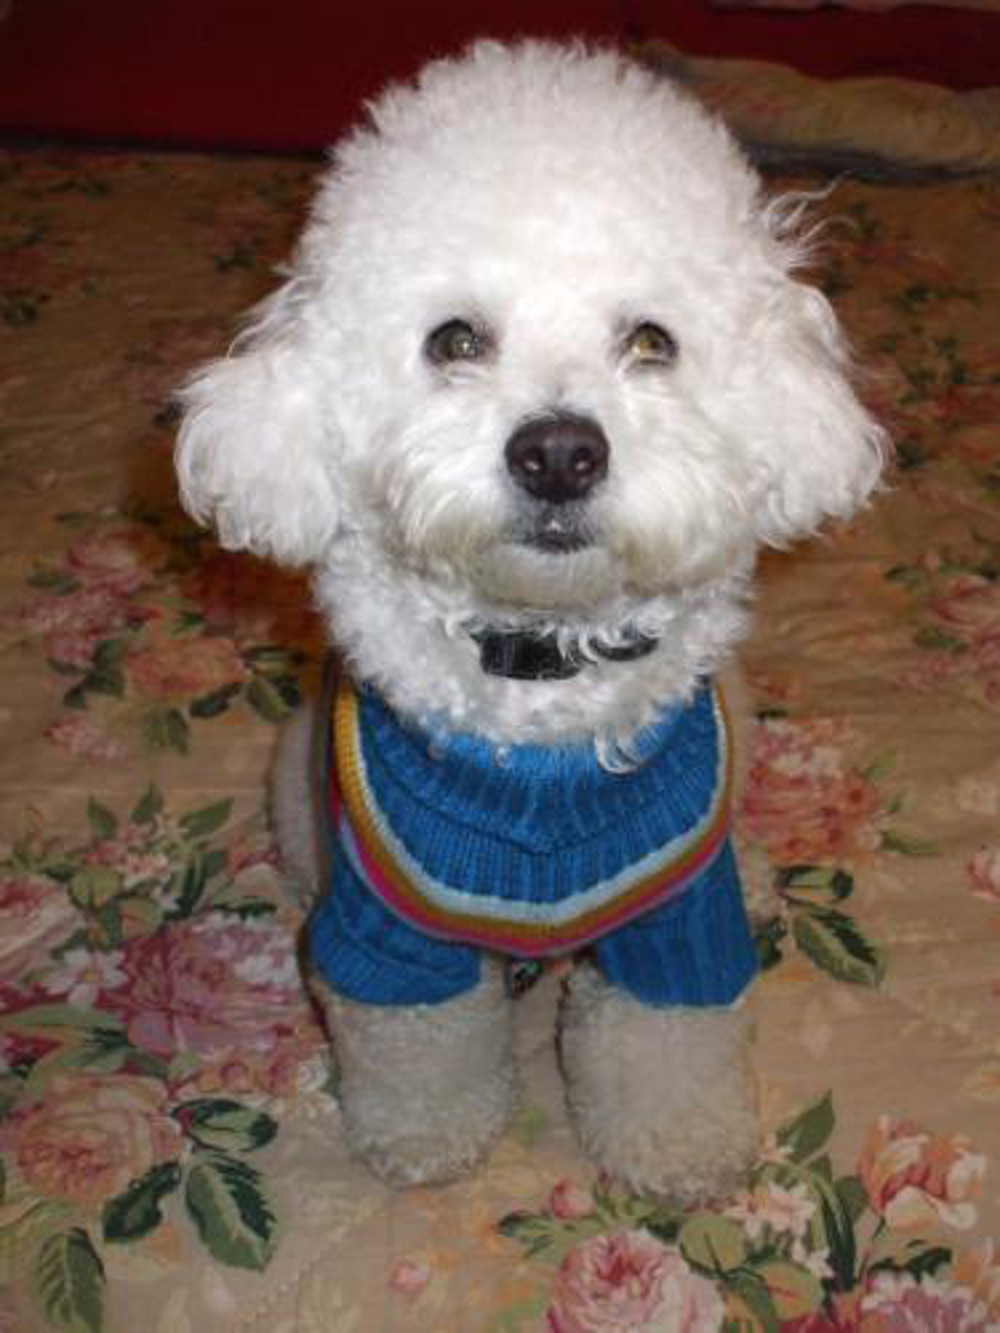 Puddle in sweater, Dog, Pet, Puddle, Sweater, HQ Photo